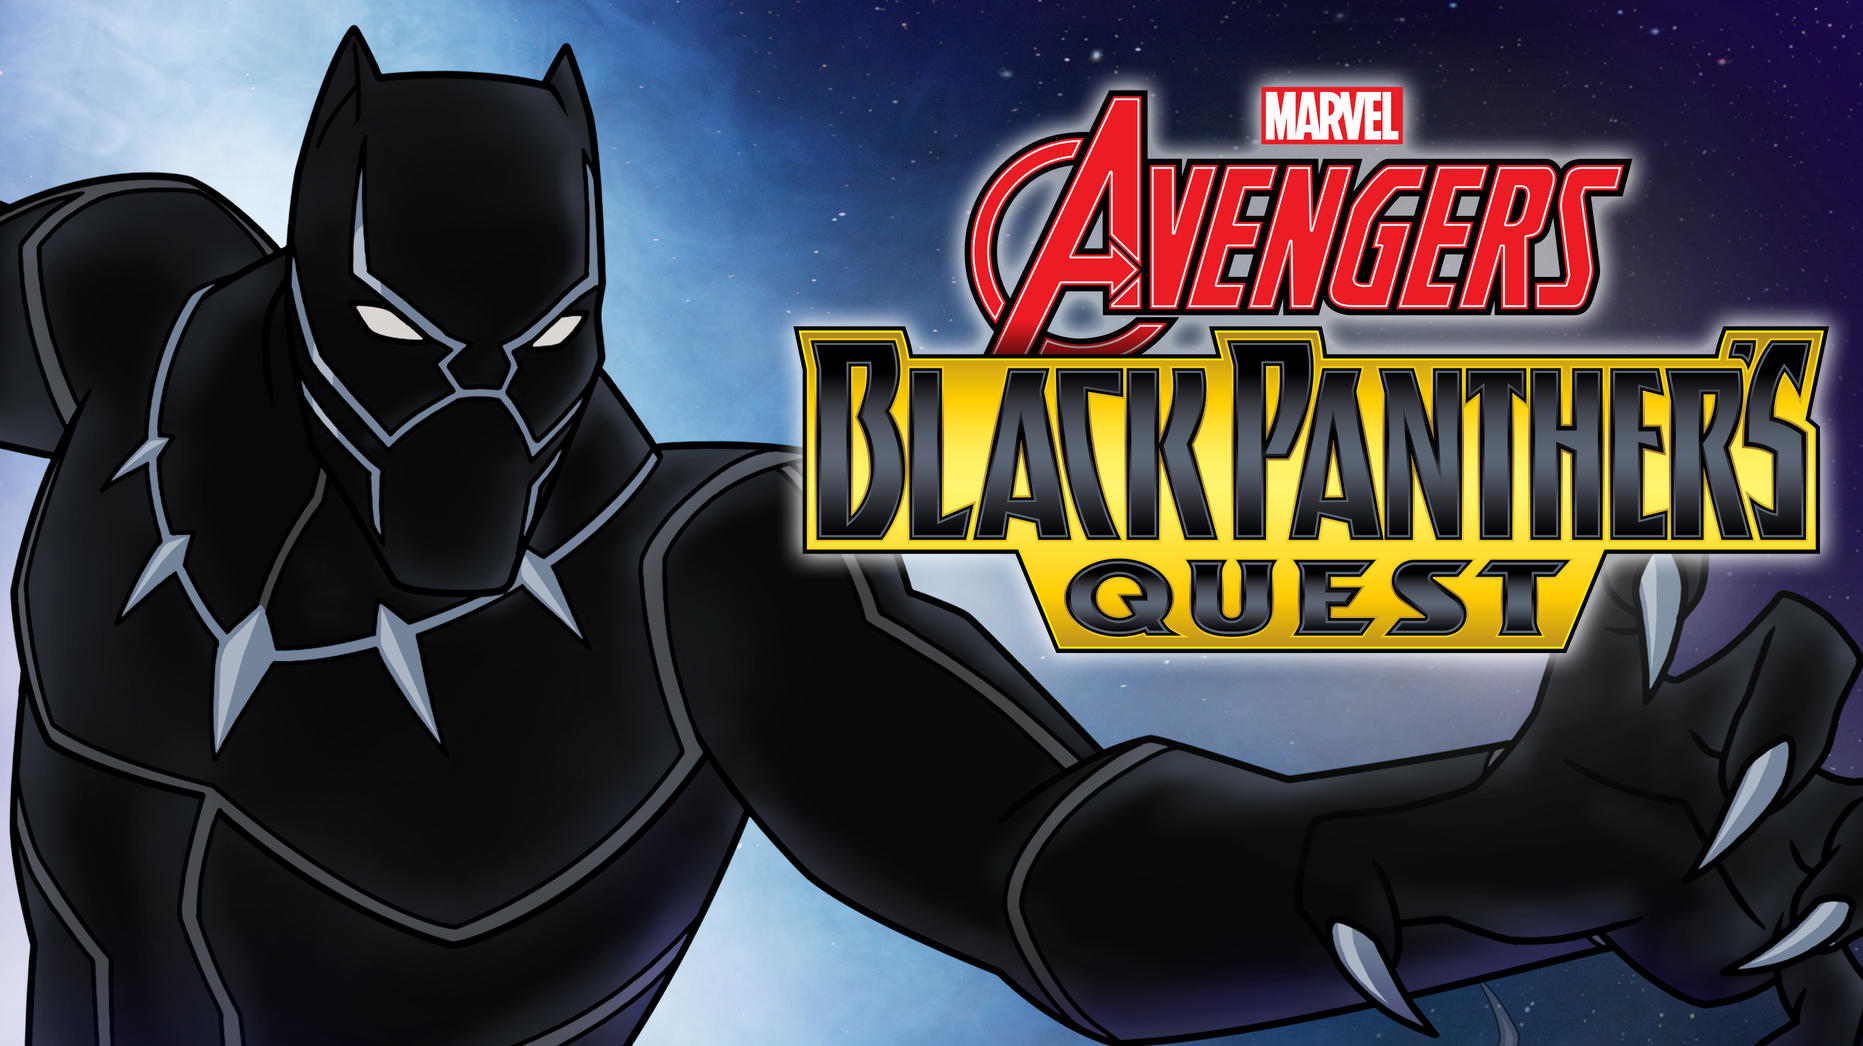 Poster and Clip Revealed for 'Marvel's Avengers: Black Panther's Quest'